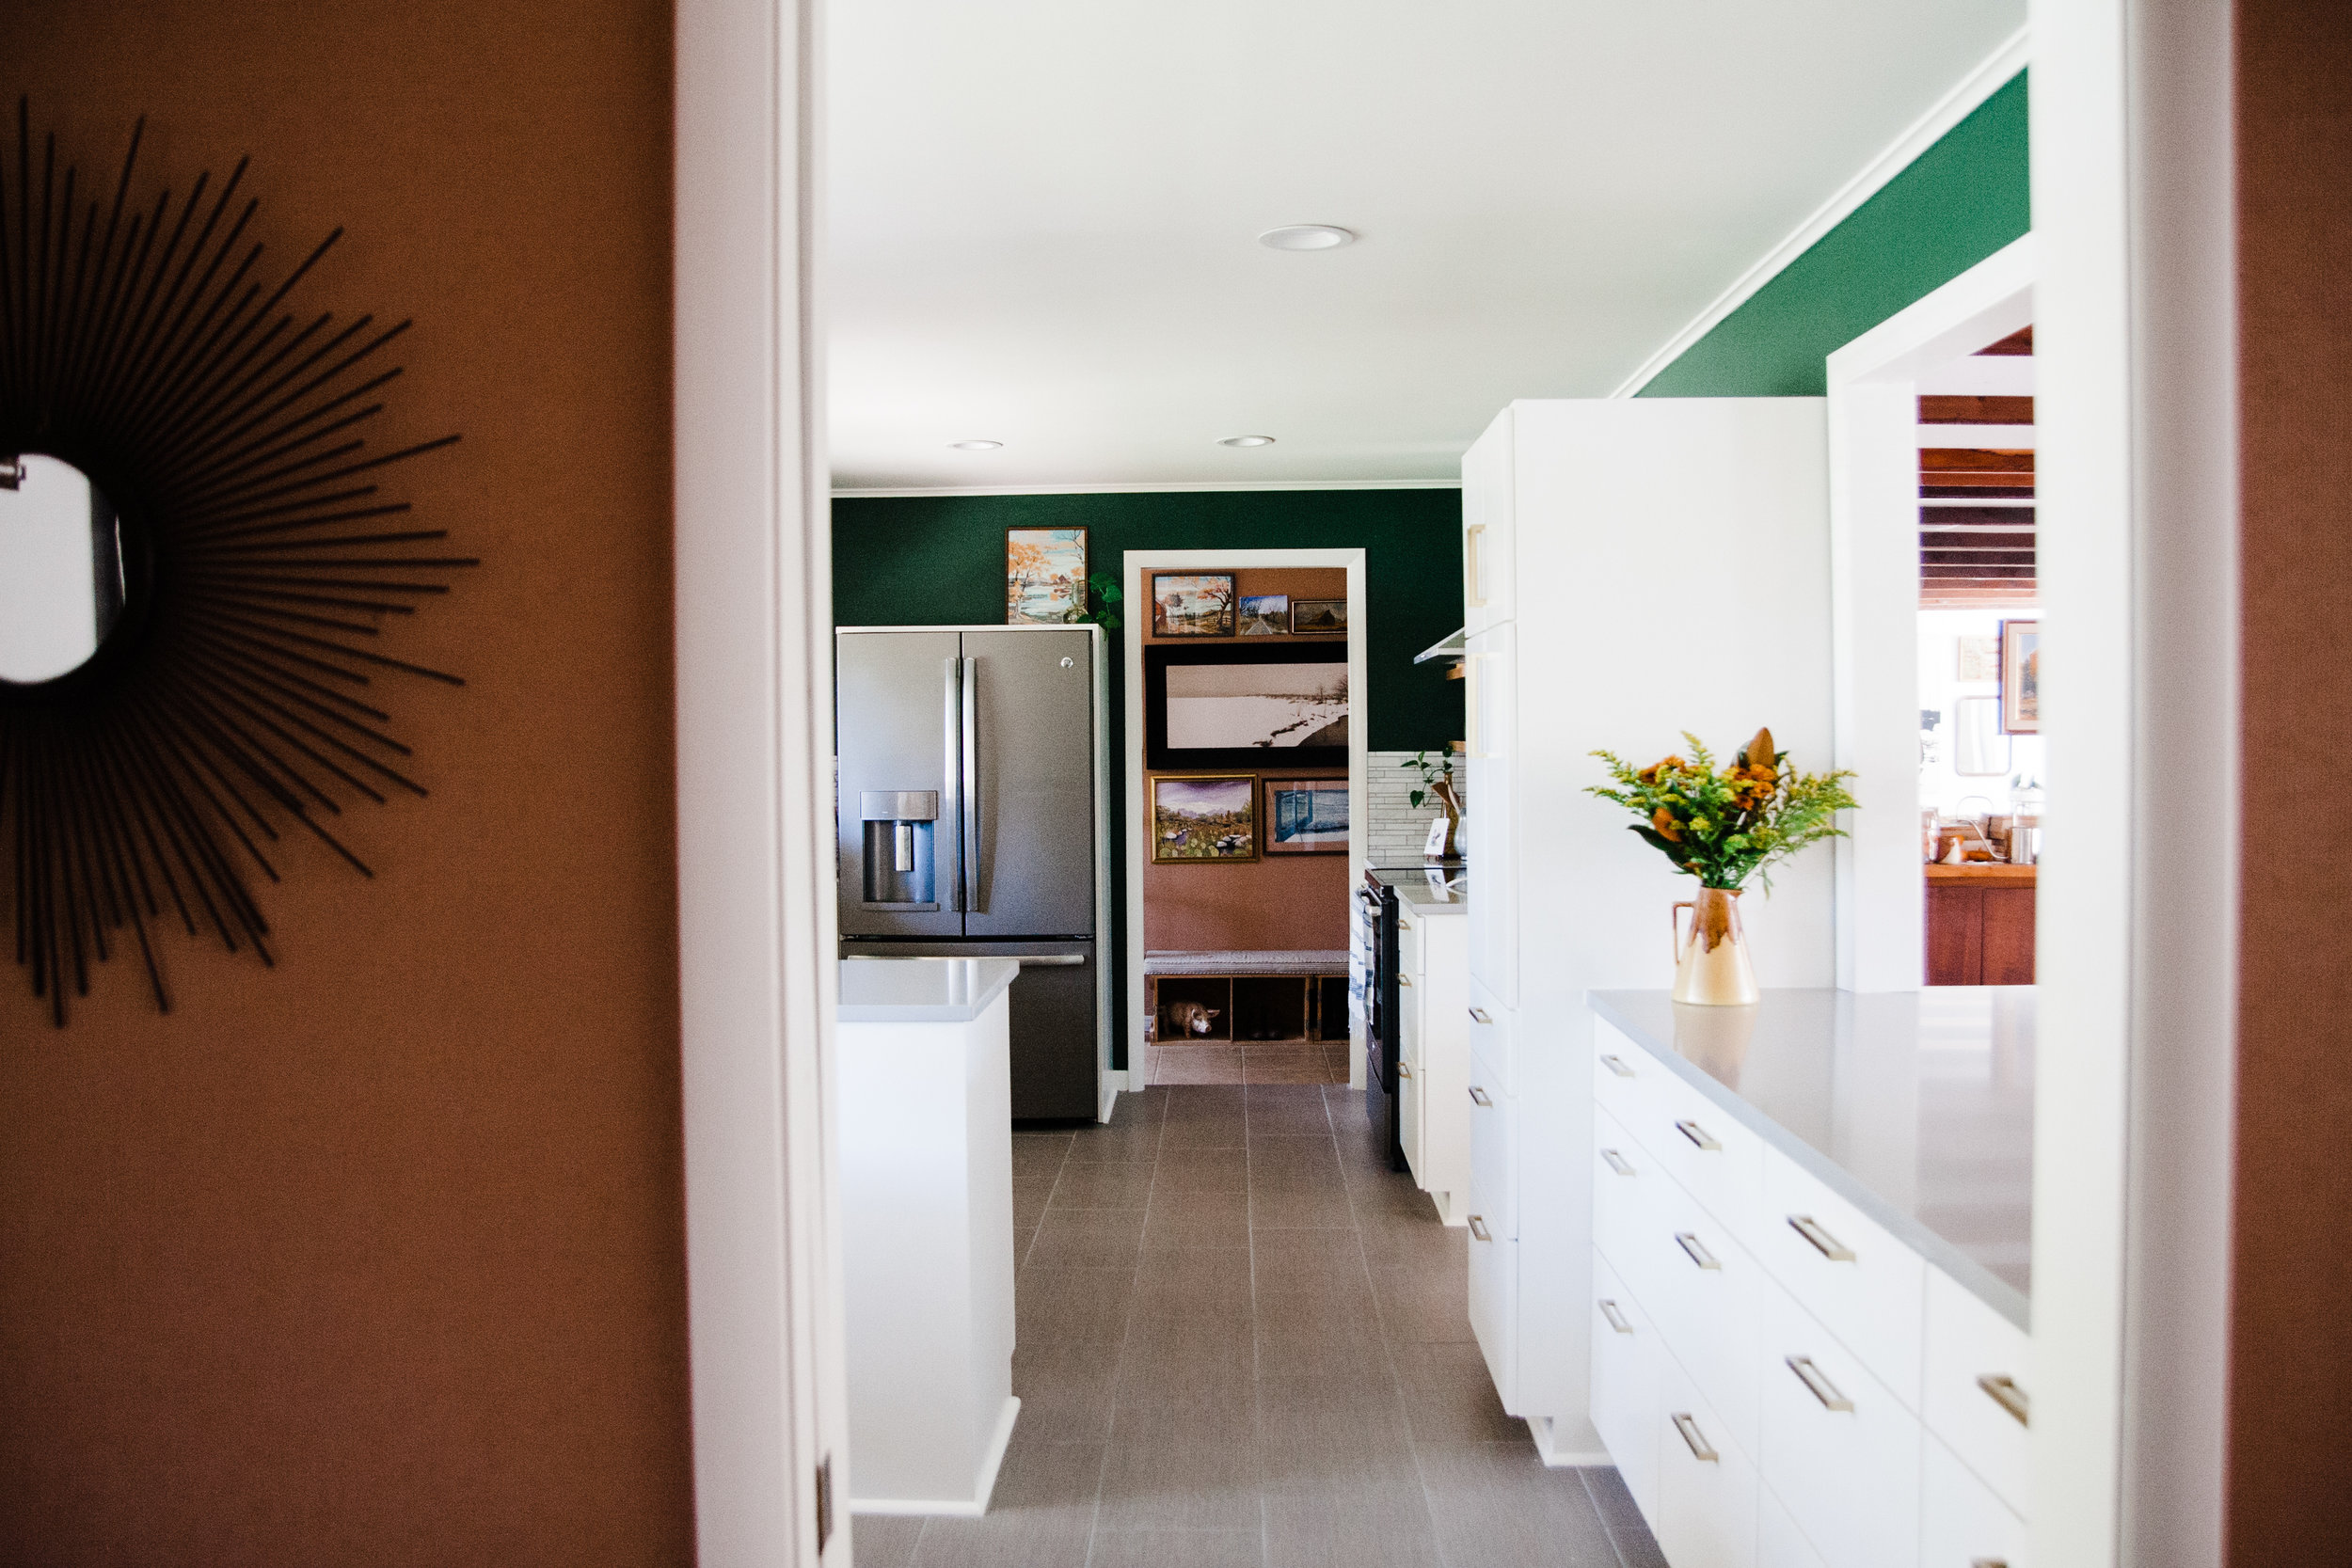 I love the view through the kitchen into the mudroom. The mudroom's landscape gallery wall feels like artwork for the kitchen too.